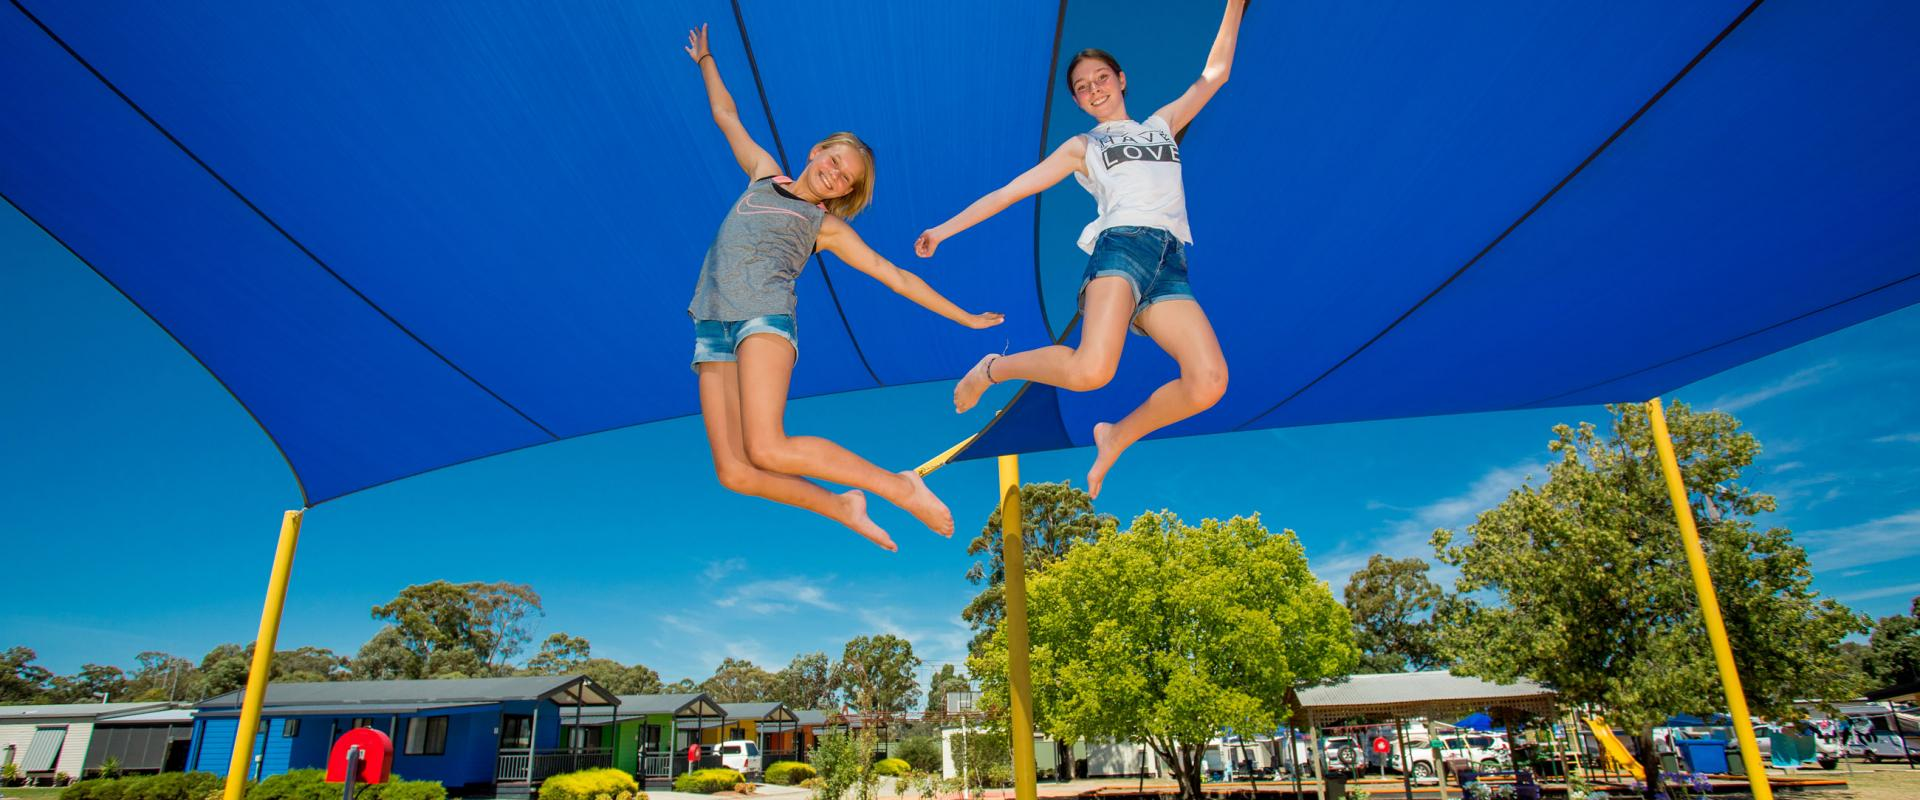 BIG4 Bendigo Park Lane Holiday Park - Girls on Jumping Cushion